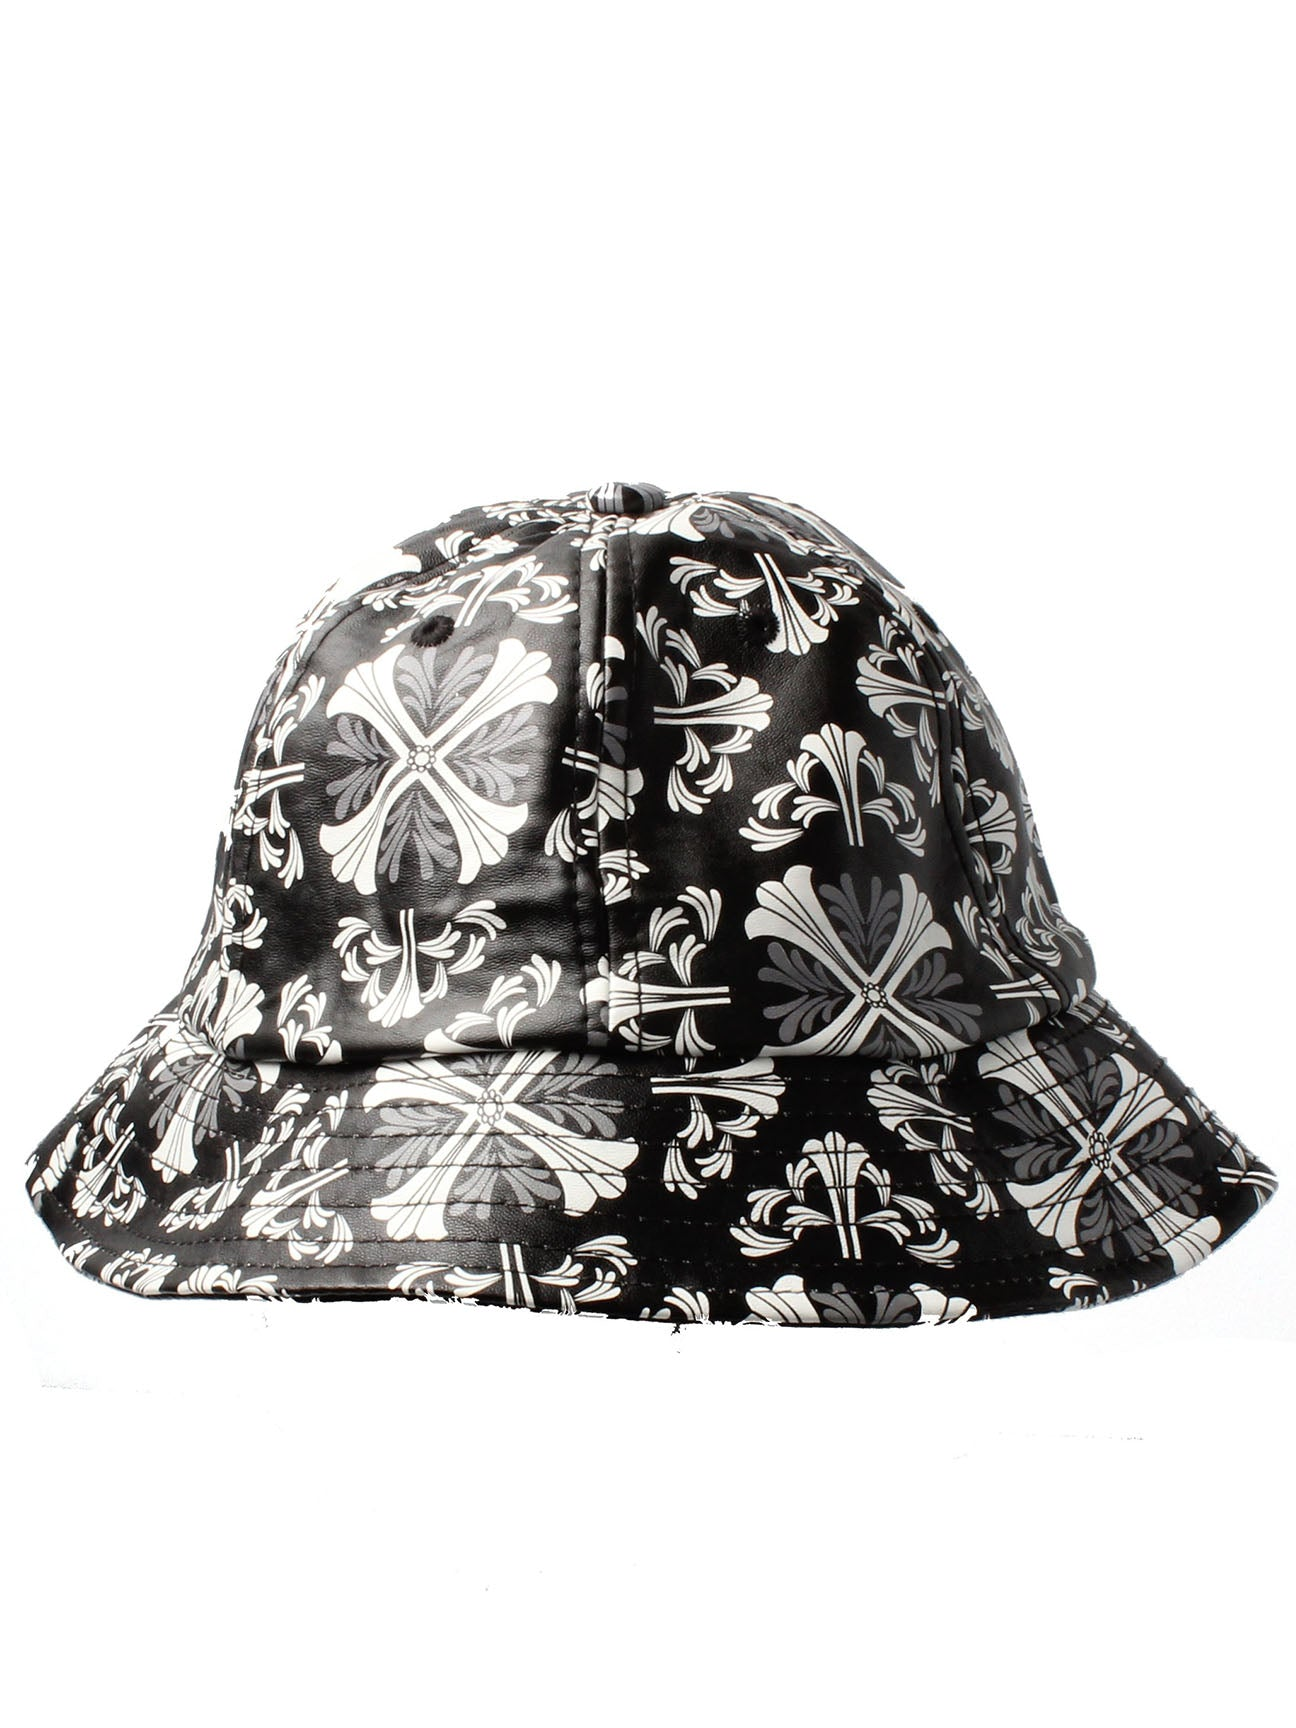 Black and White PU Bucket Hat with Floral Crosses